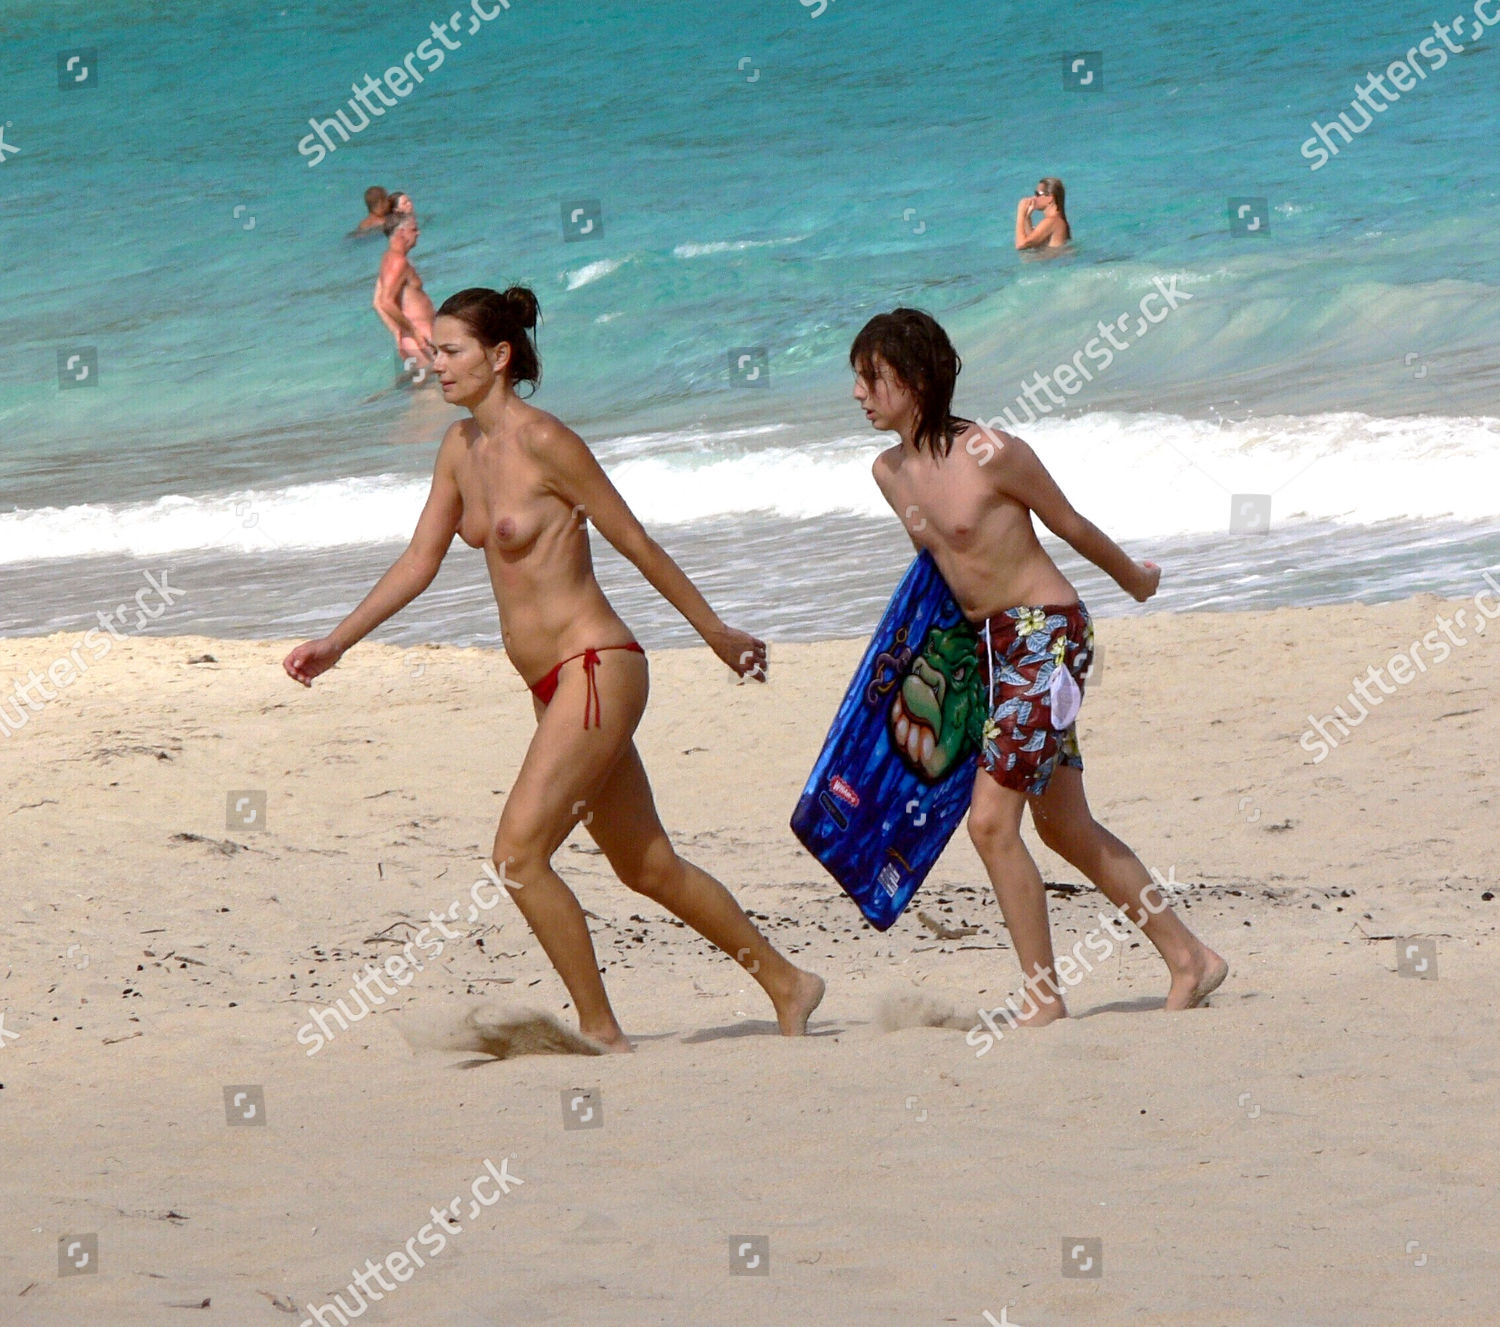 St Barths Topless photo 4